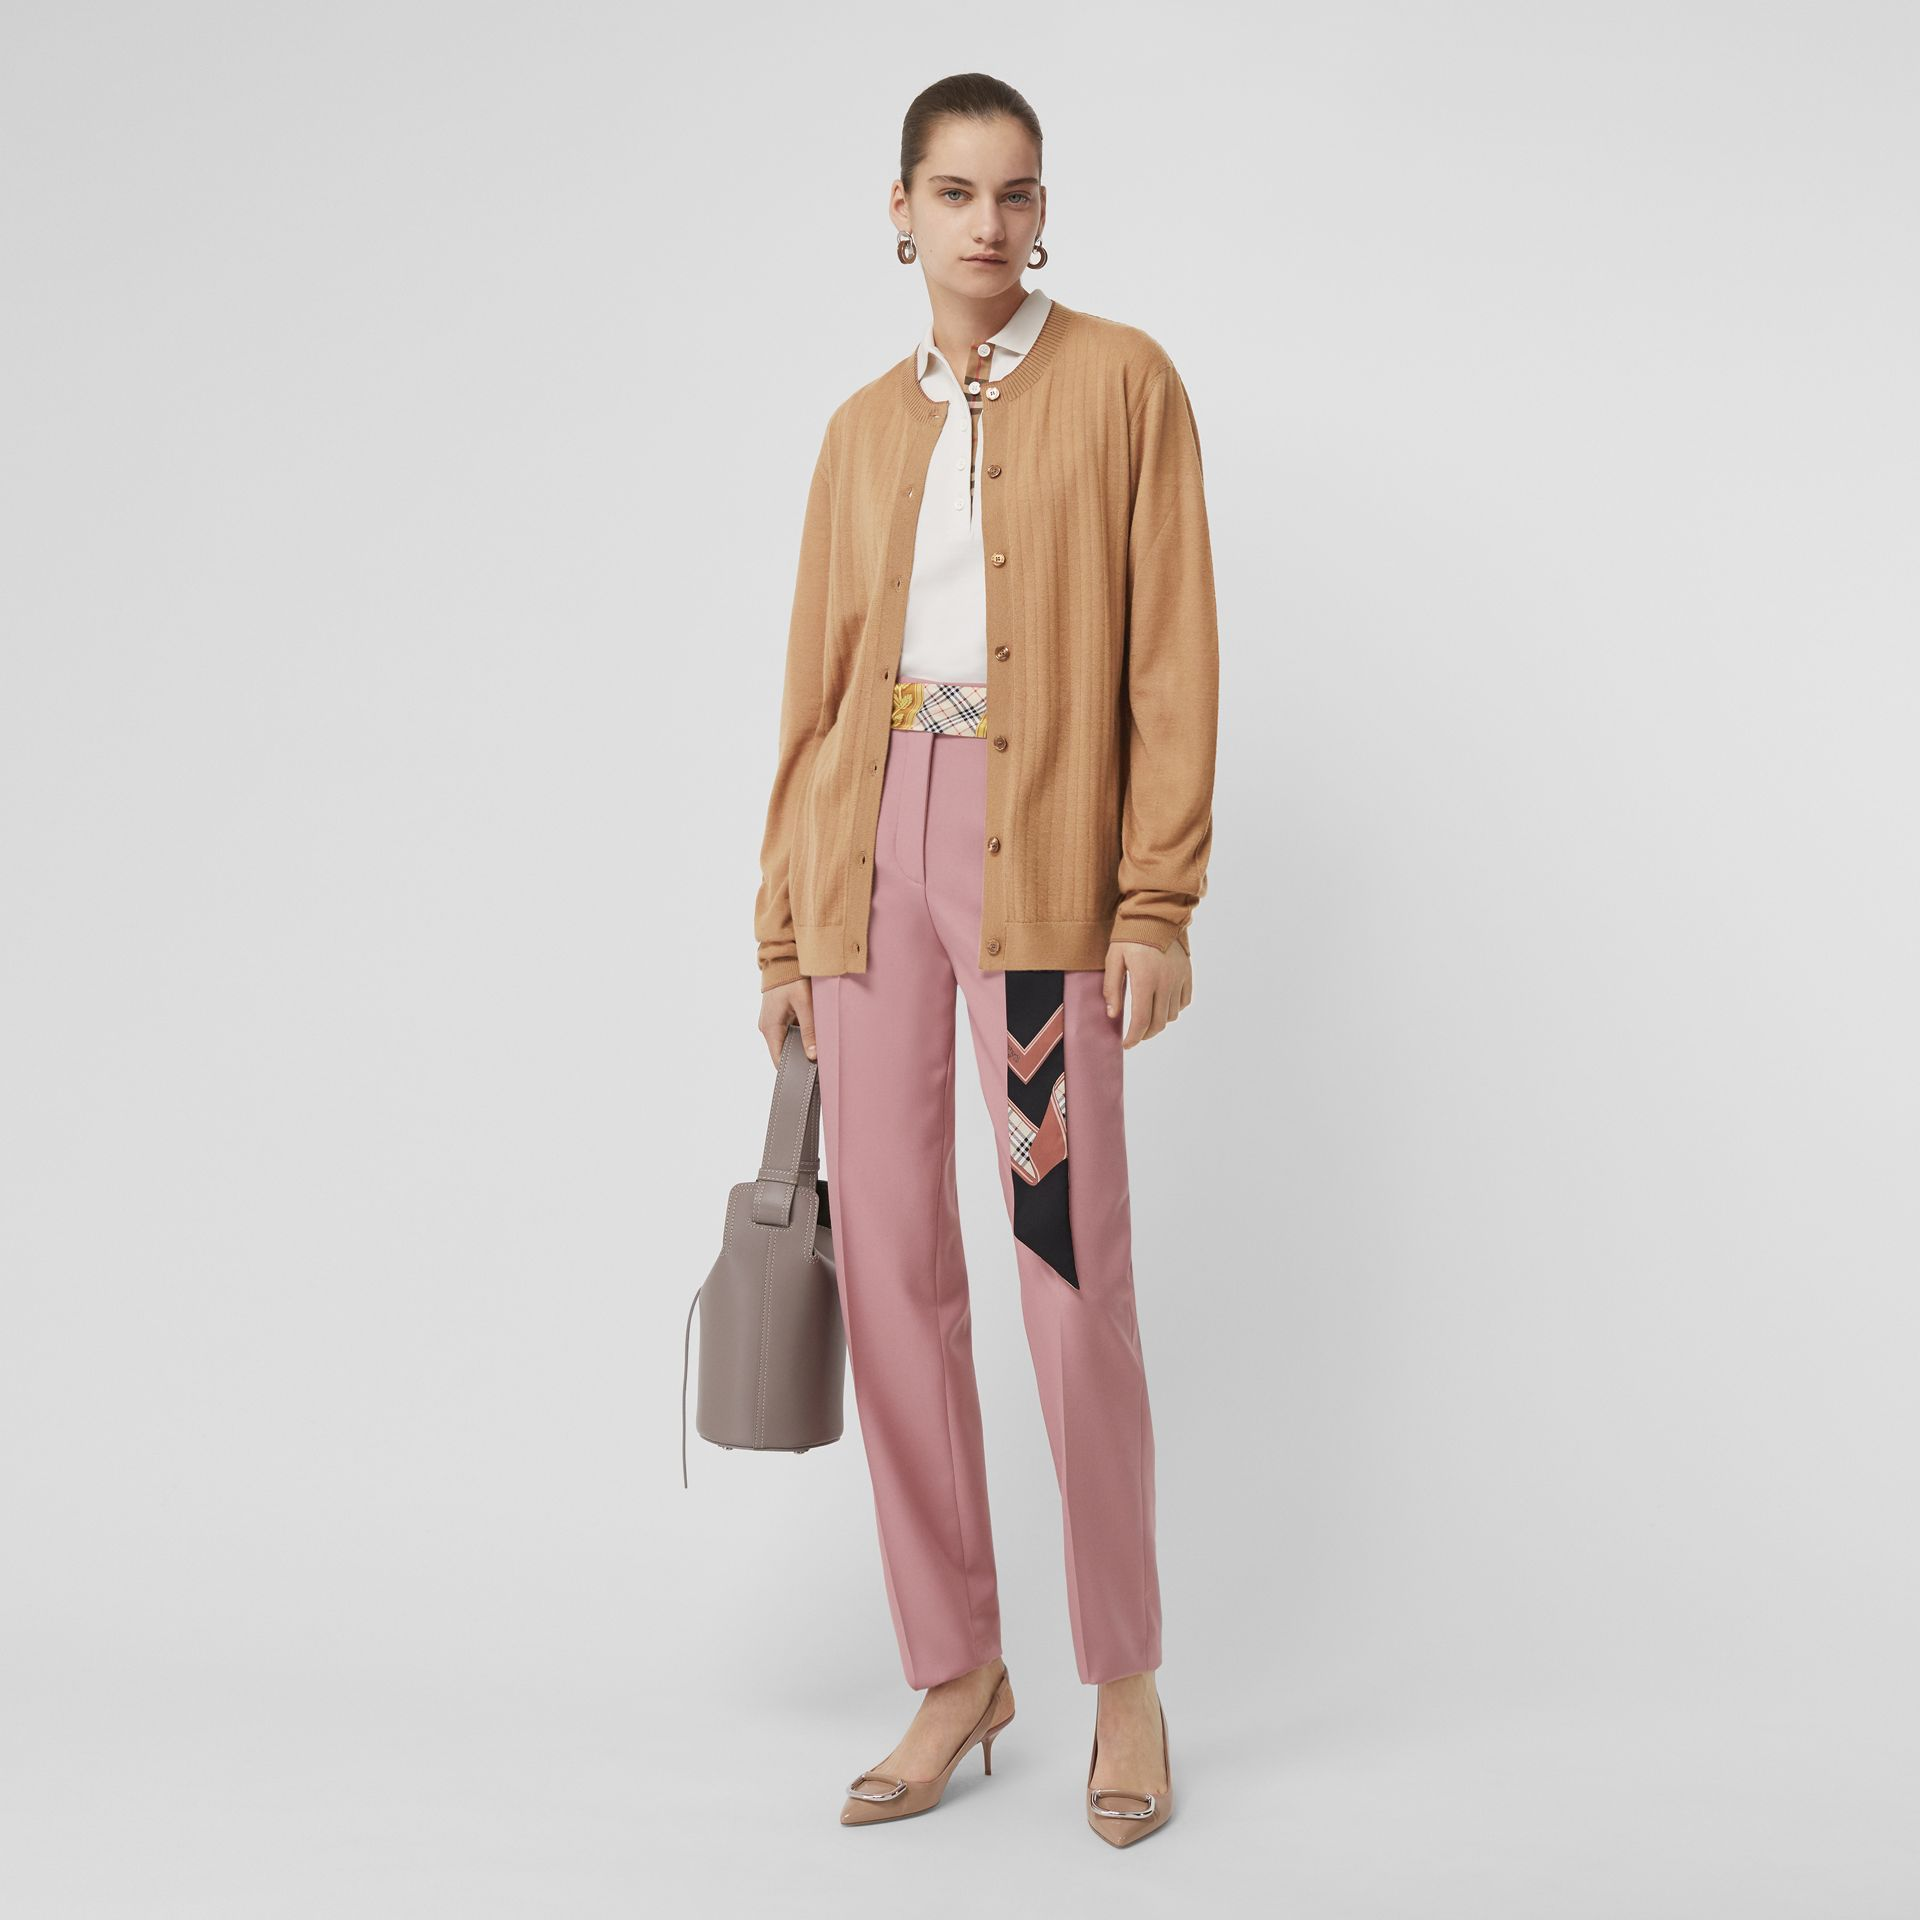 Rib Knit Cashmere Cardigan in Camel - Women | Burberry - gallery image 0